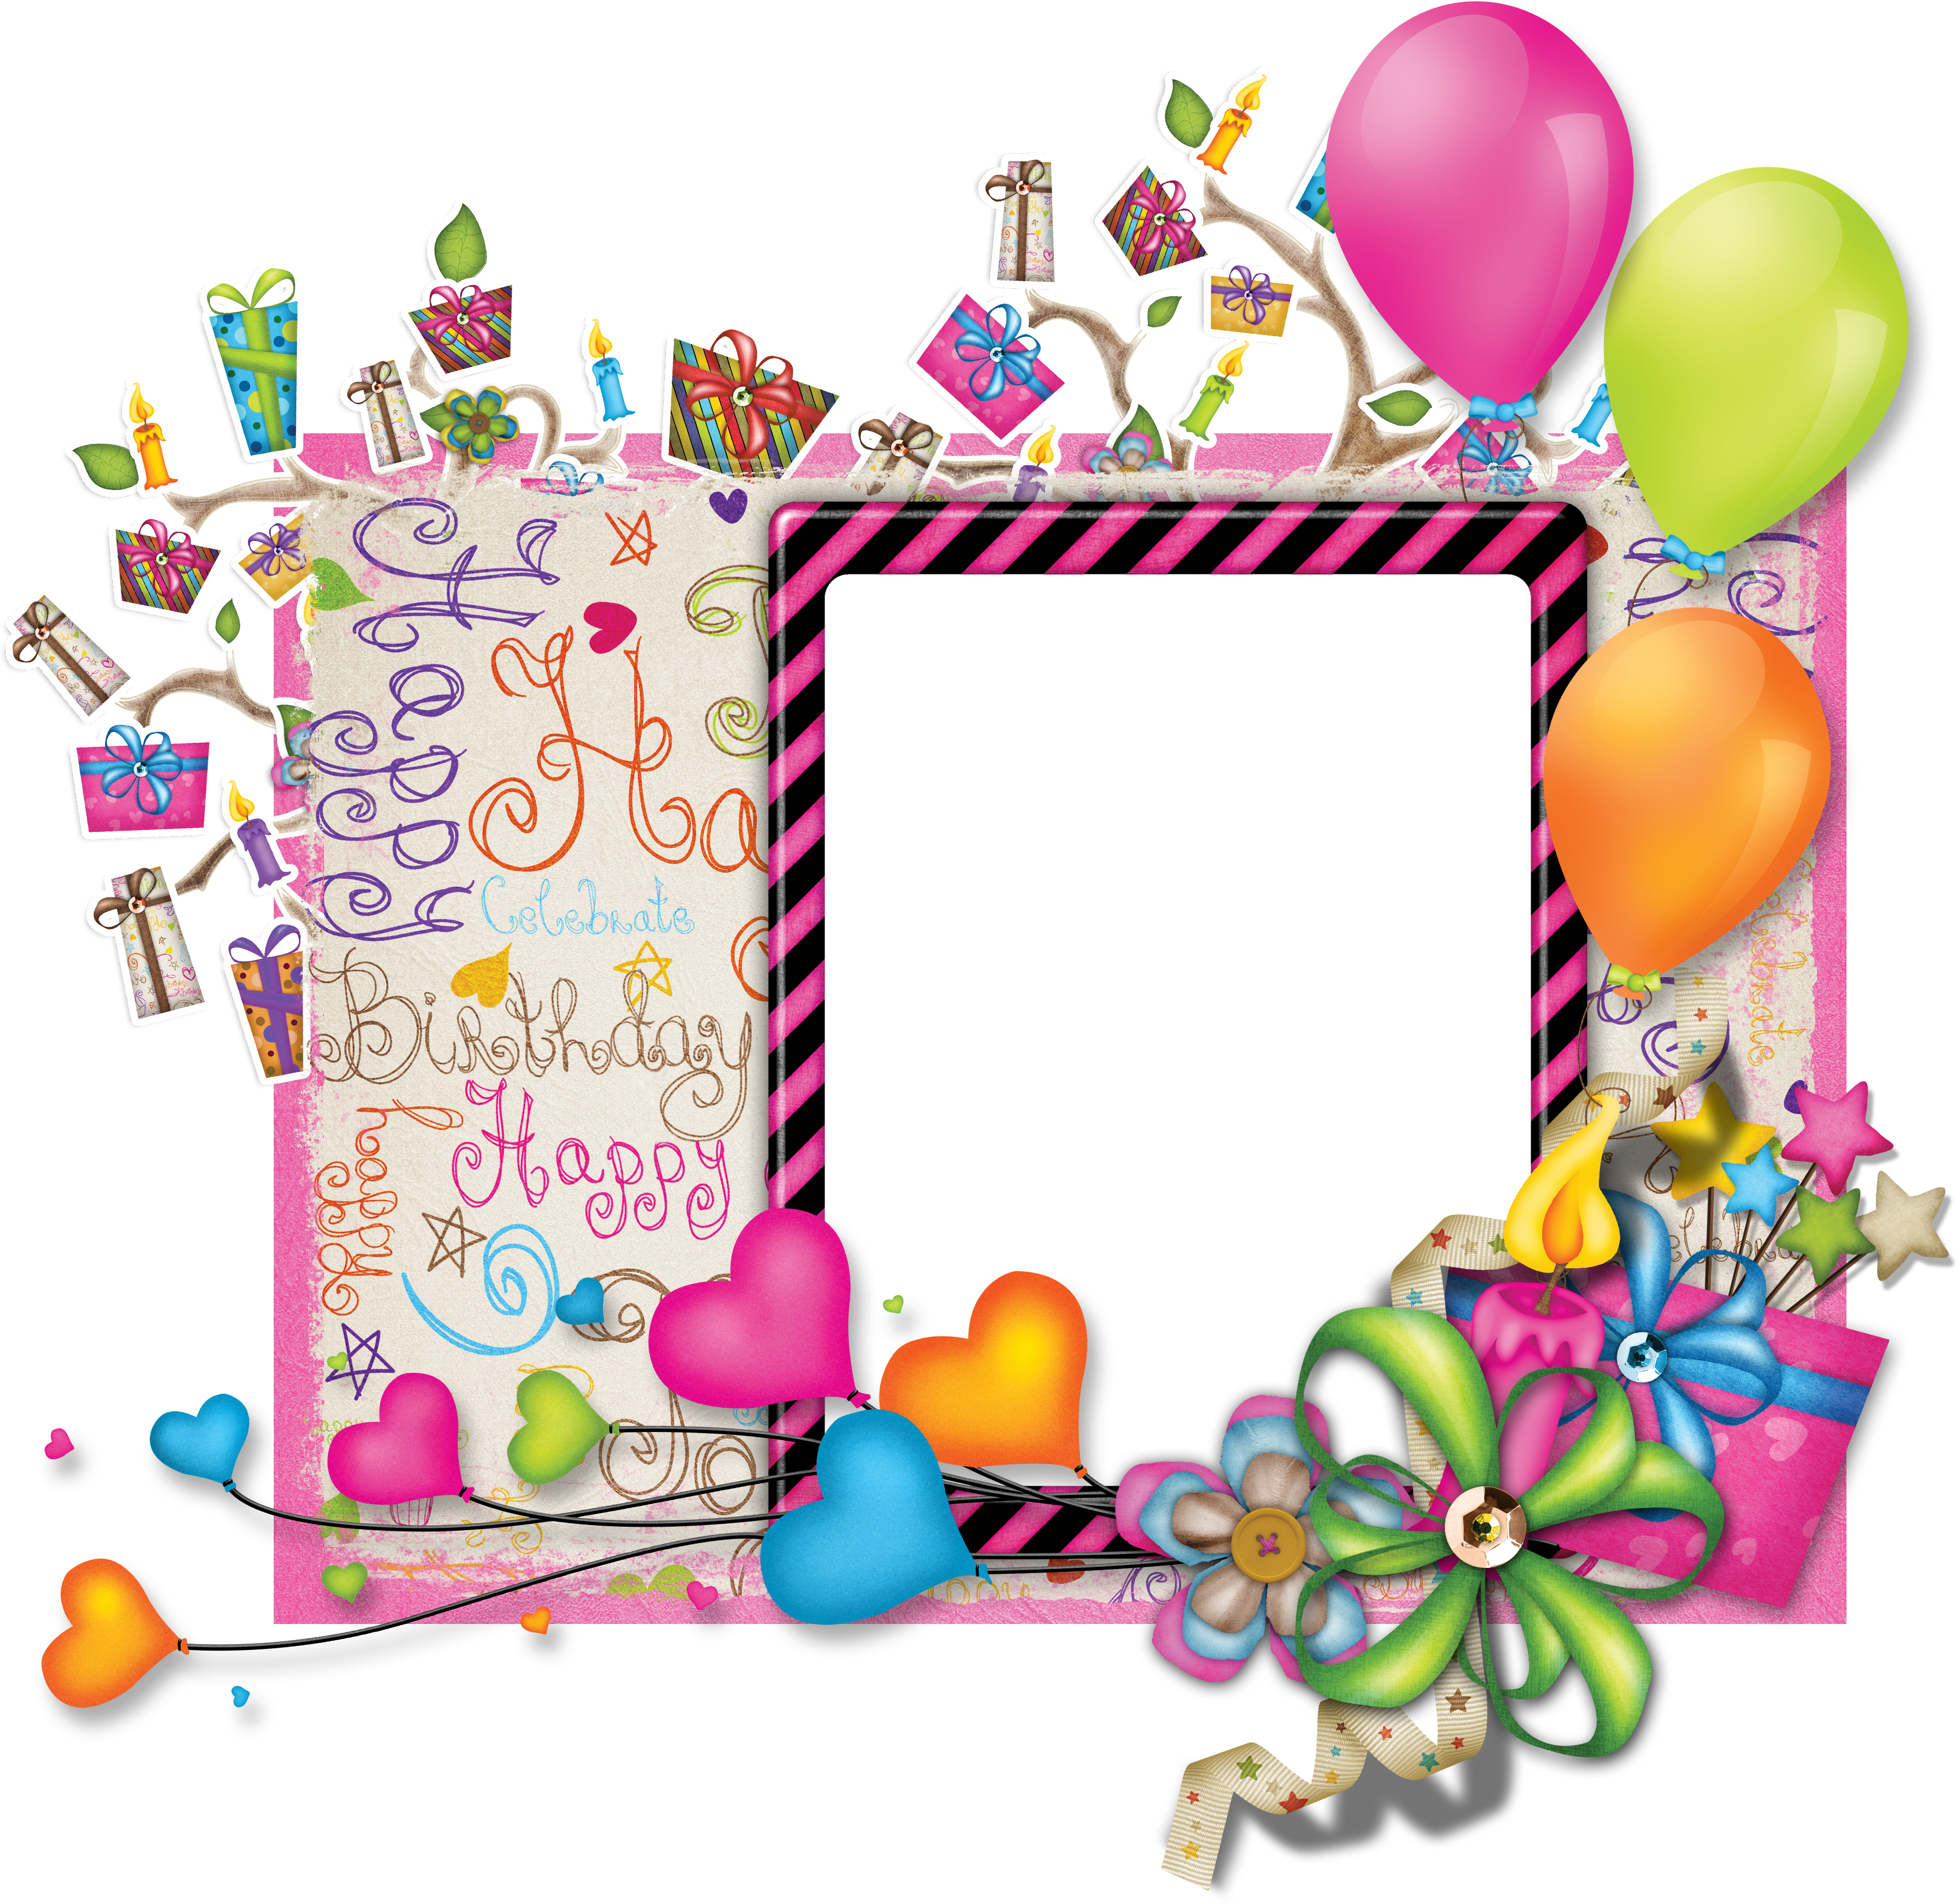 Cake Picture Frame Birthday Free Photo PNG PNG Image